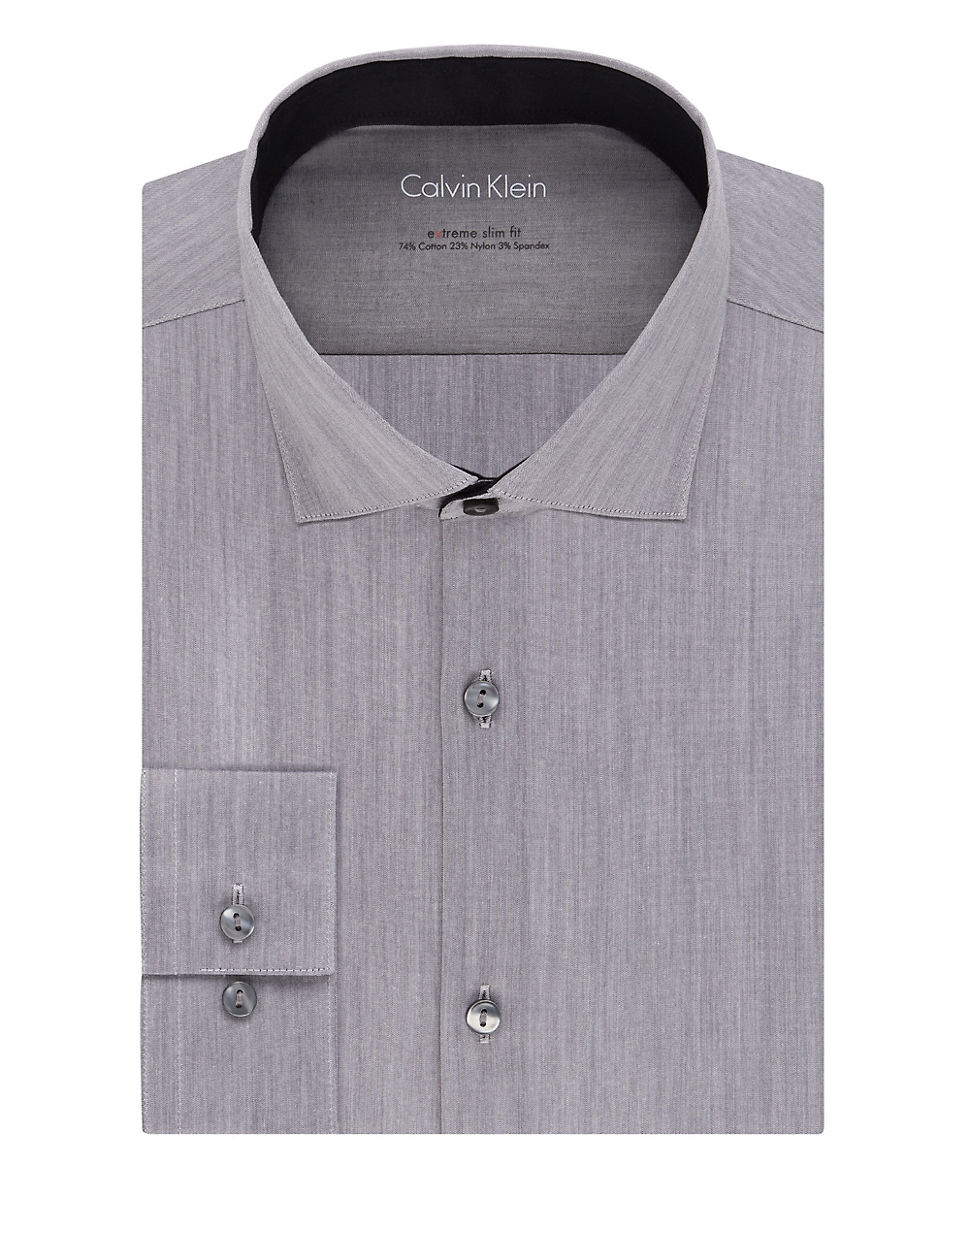 Calvin klein slim fit dress shirt in gray for men lyst for Calvin klein athletic fit dress shirt